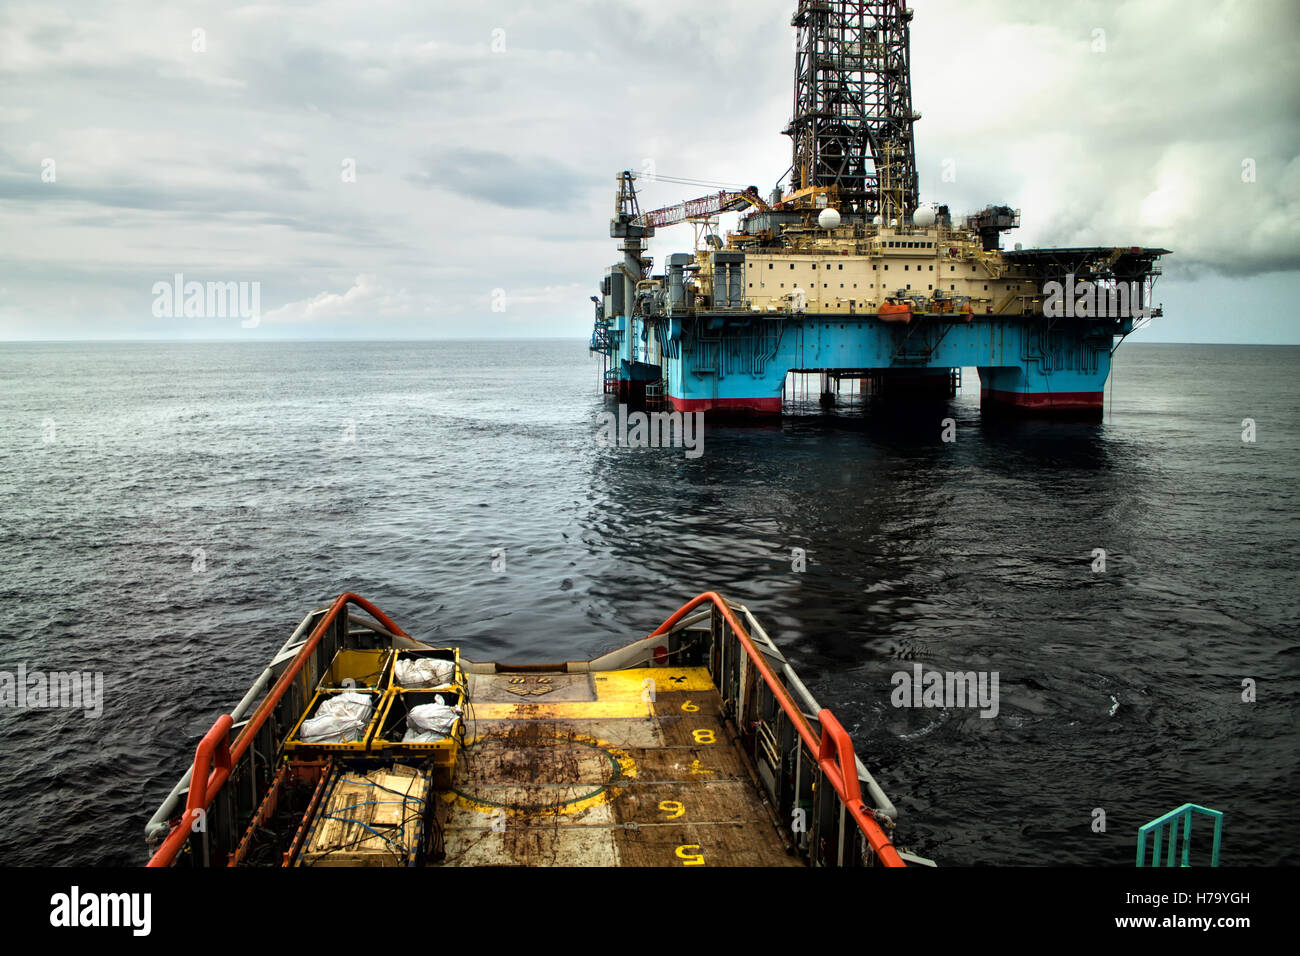 Anchor-handling Tug/Supply (AHTS) vessel during dynamic positioning (DP) operations near Oil Rig. Stock Photo